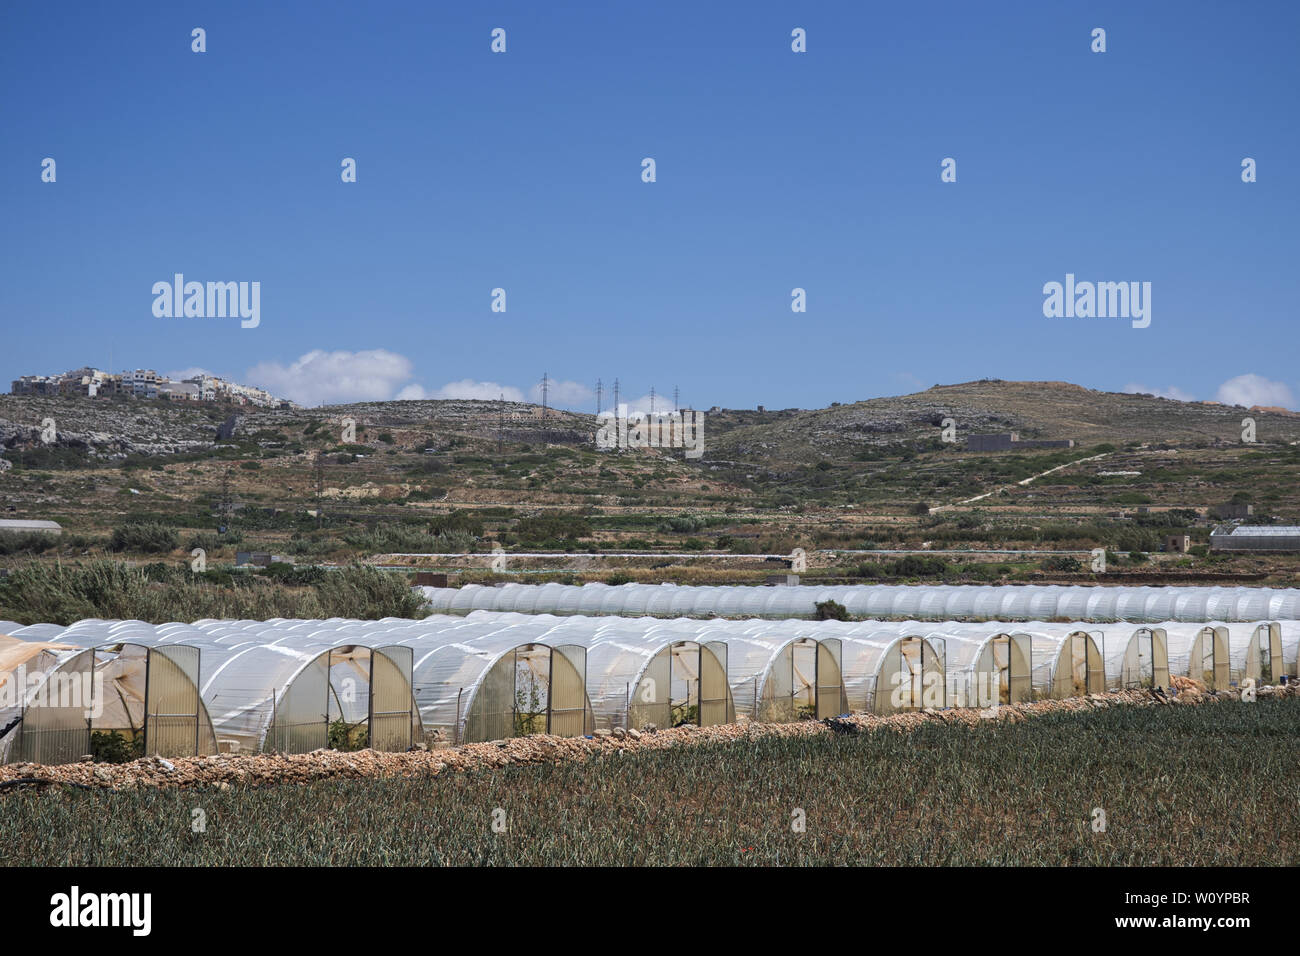 Array of plastic tunnel greenhouses with field of young vegetables in front against a blue sky. Stock Photo